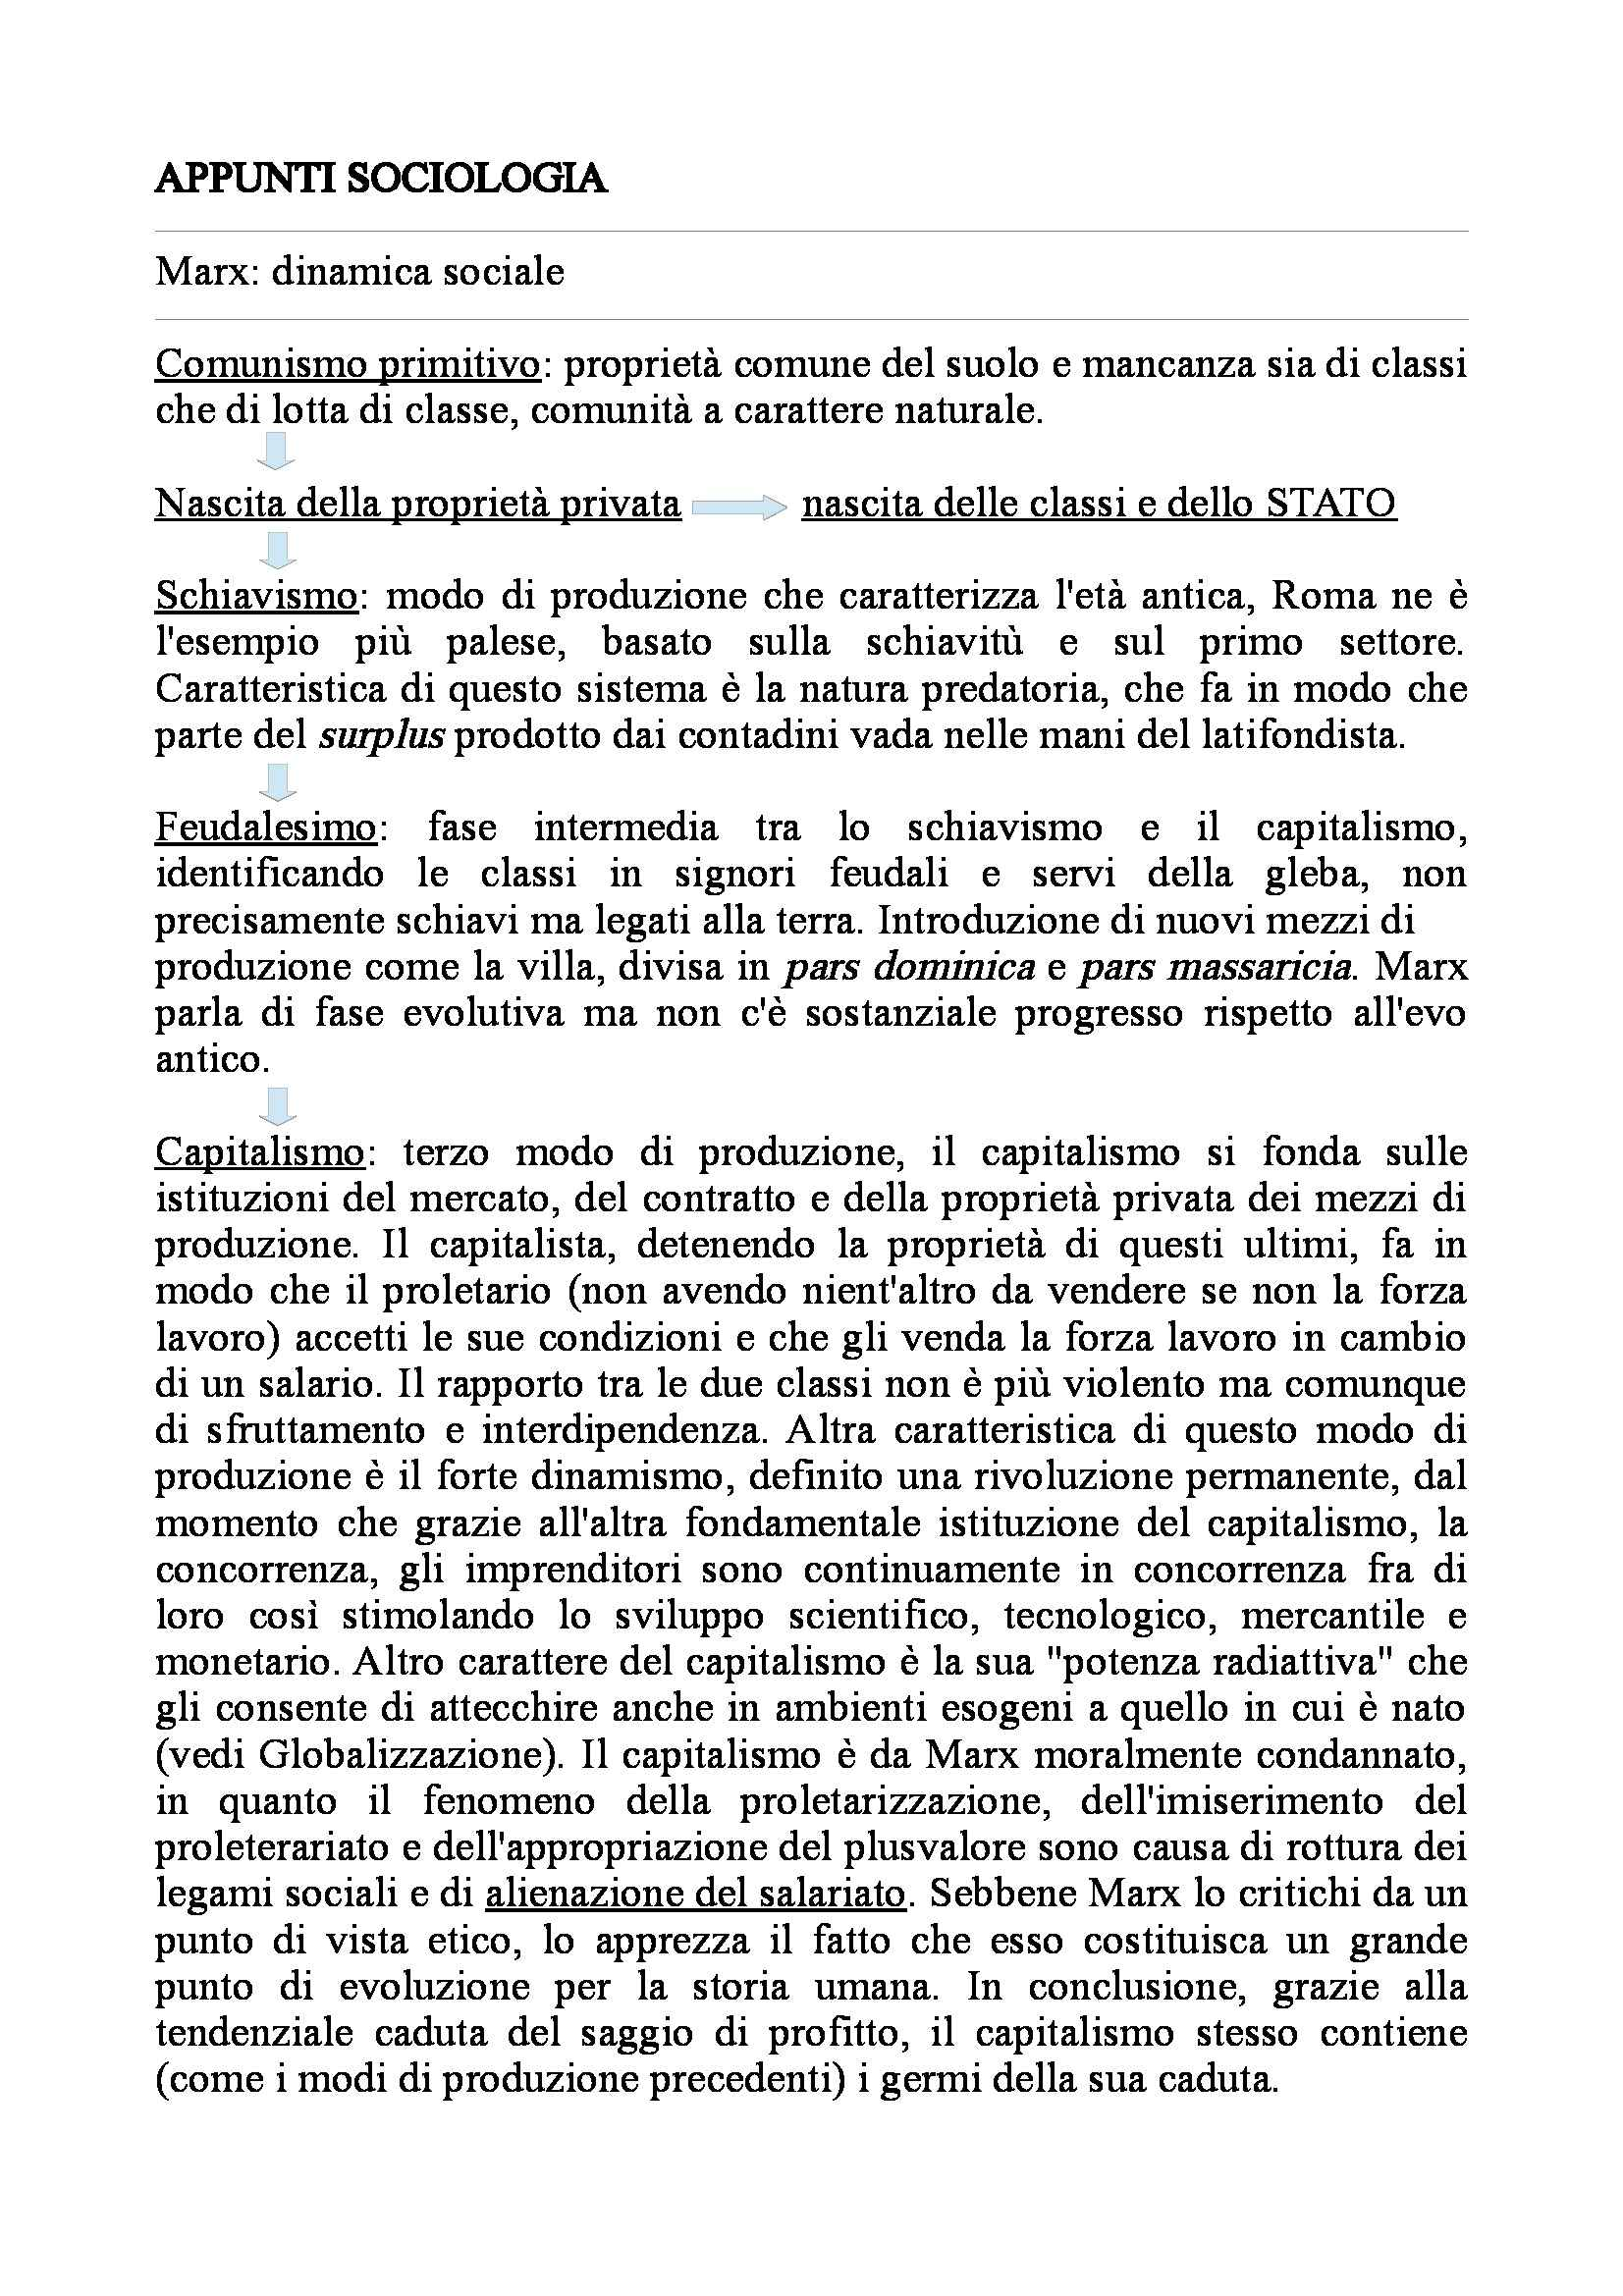 Sociologia generale  - Appunti Pag. 1